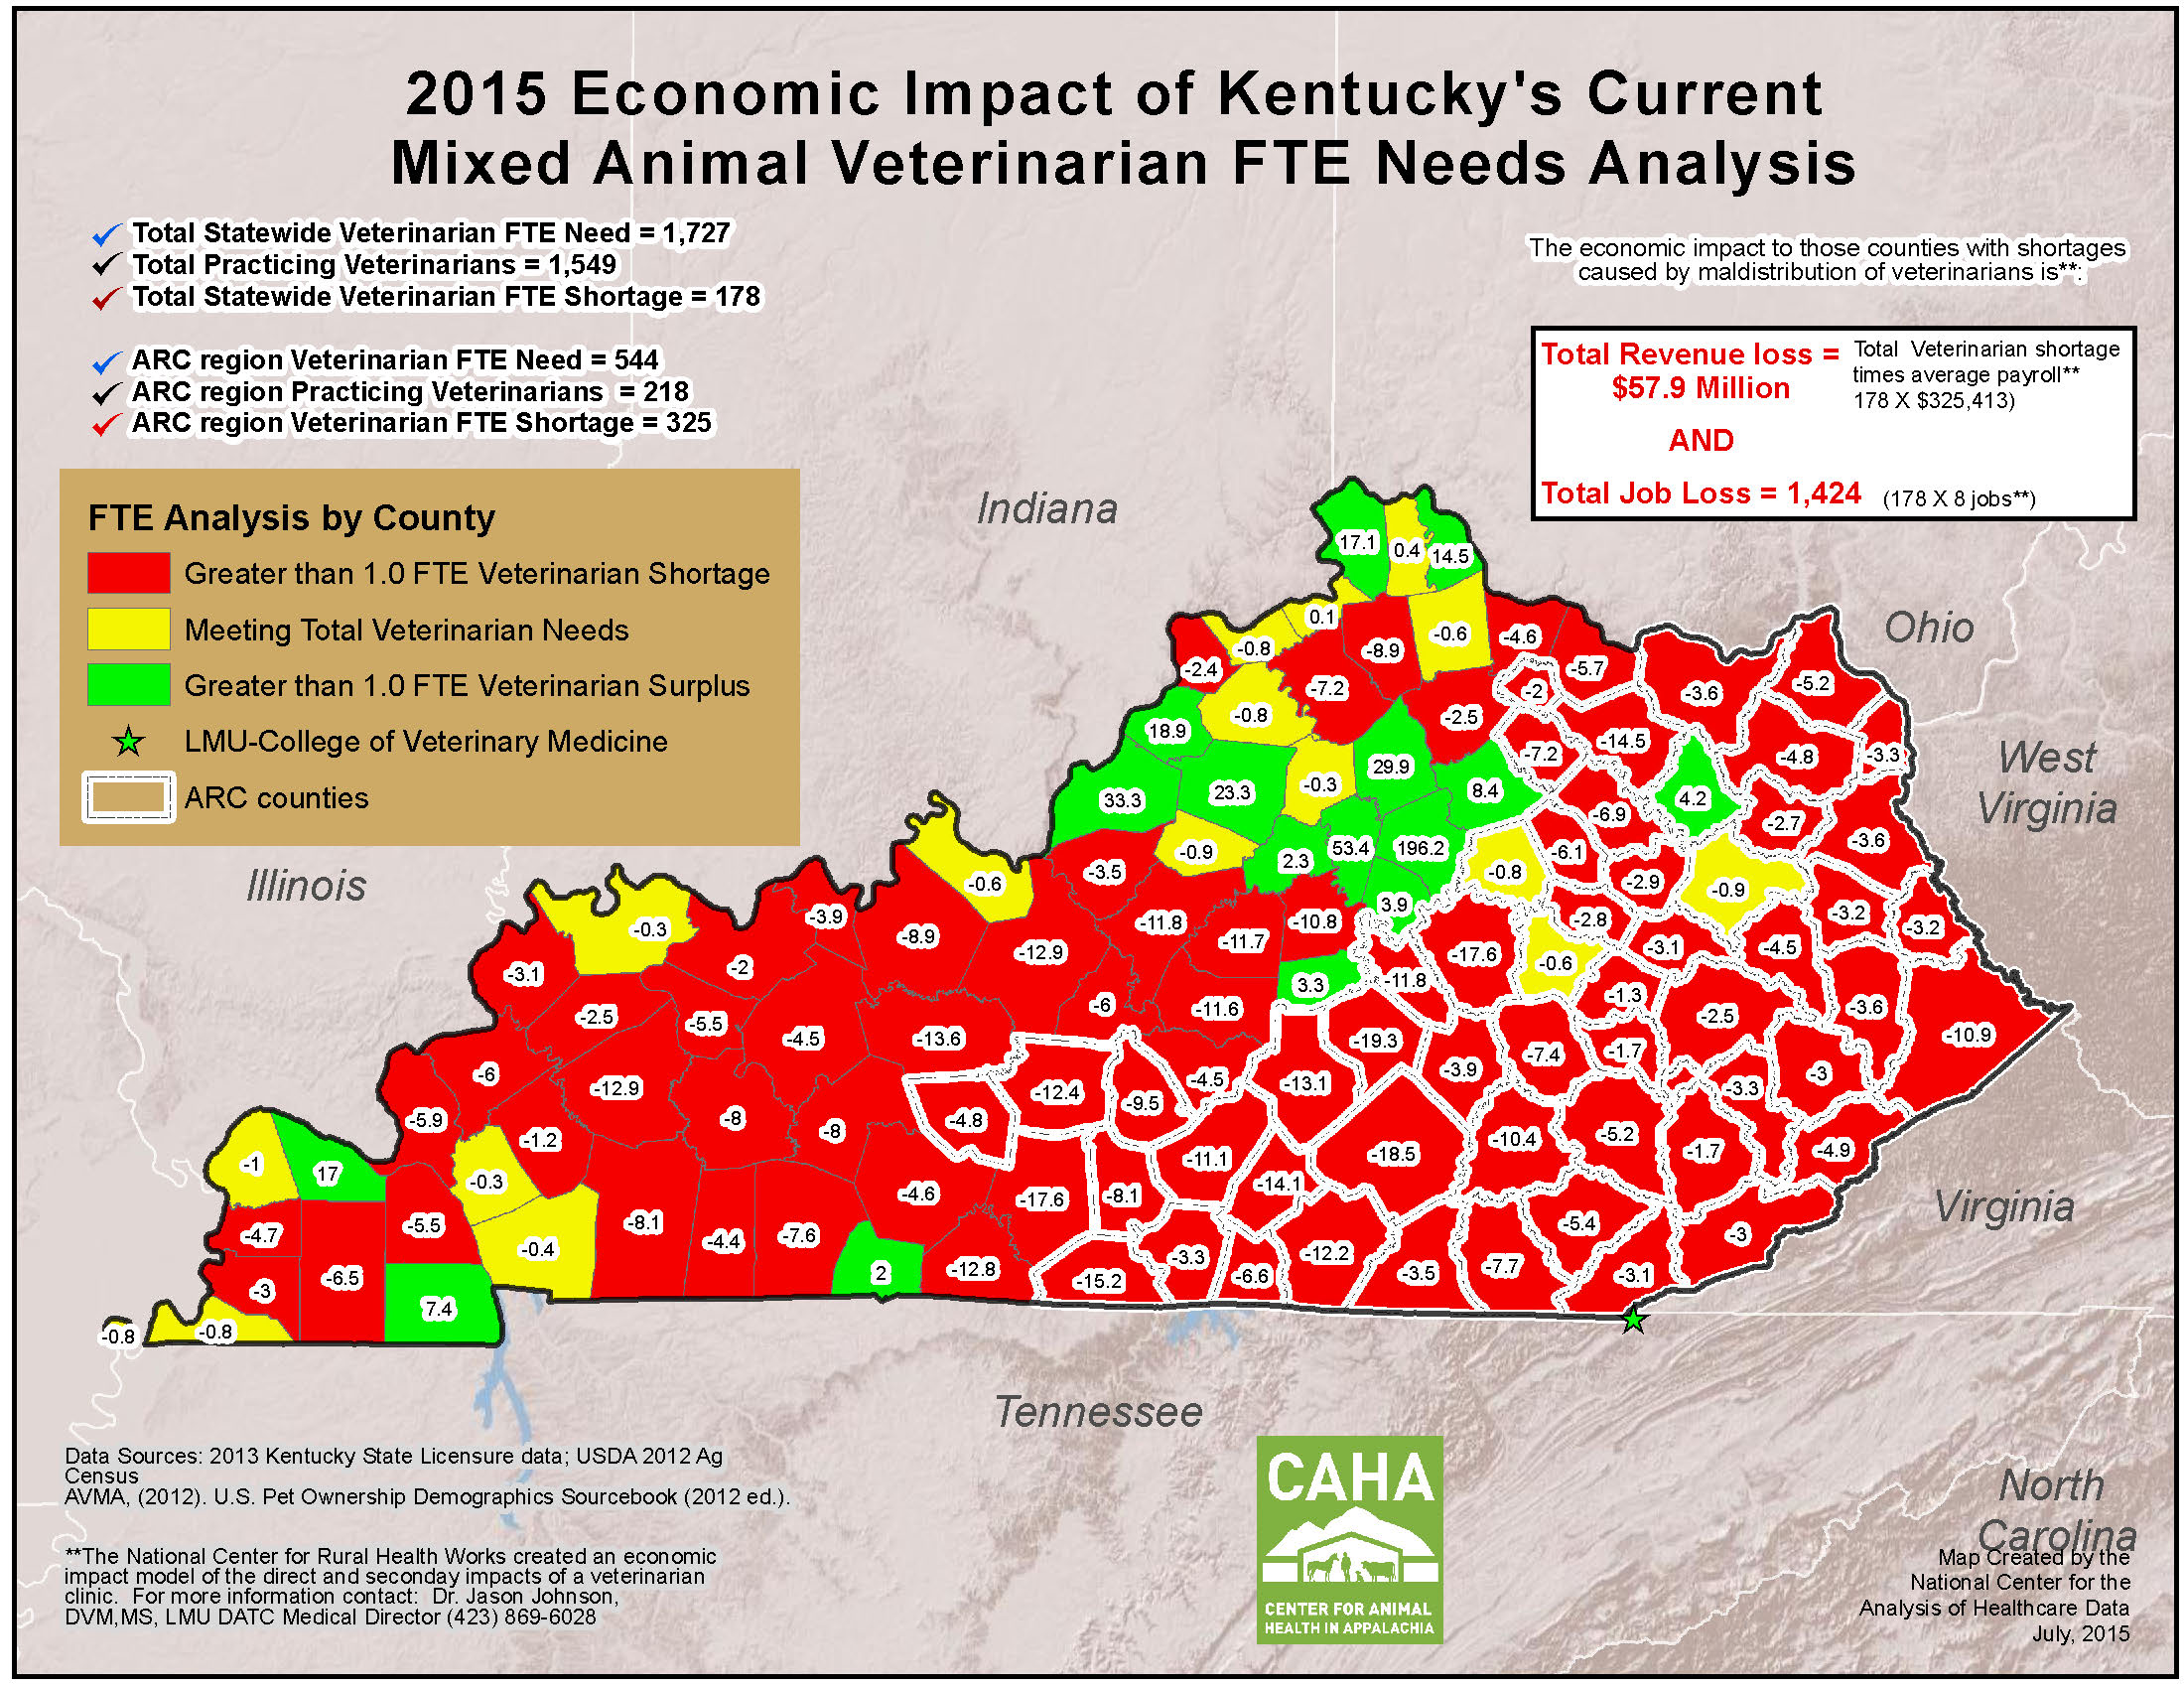 Kentucky Veterinarian Mixed Animal Veterinarian FTE Need Analysis and Economic Impact July 23